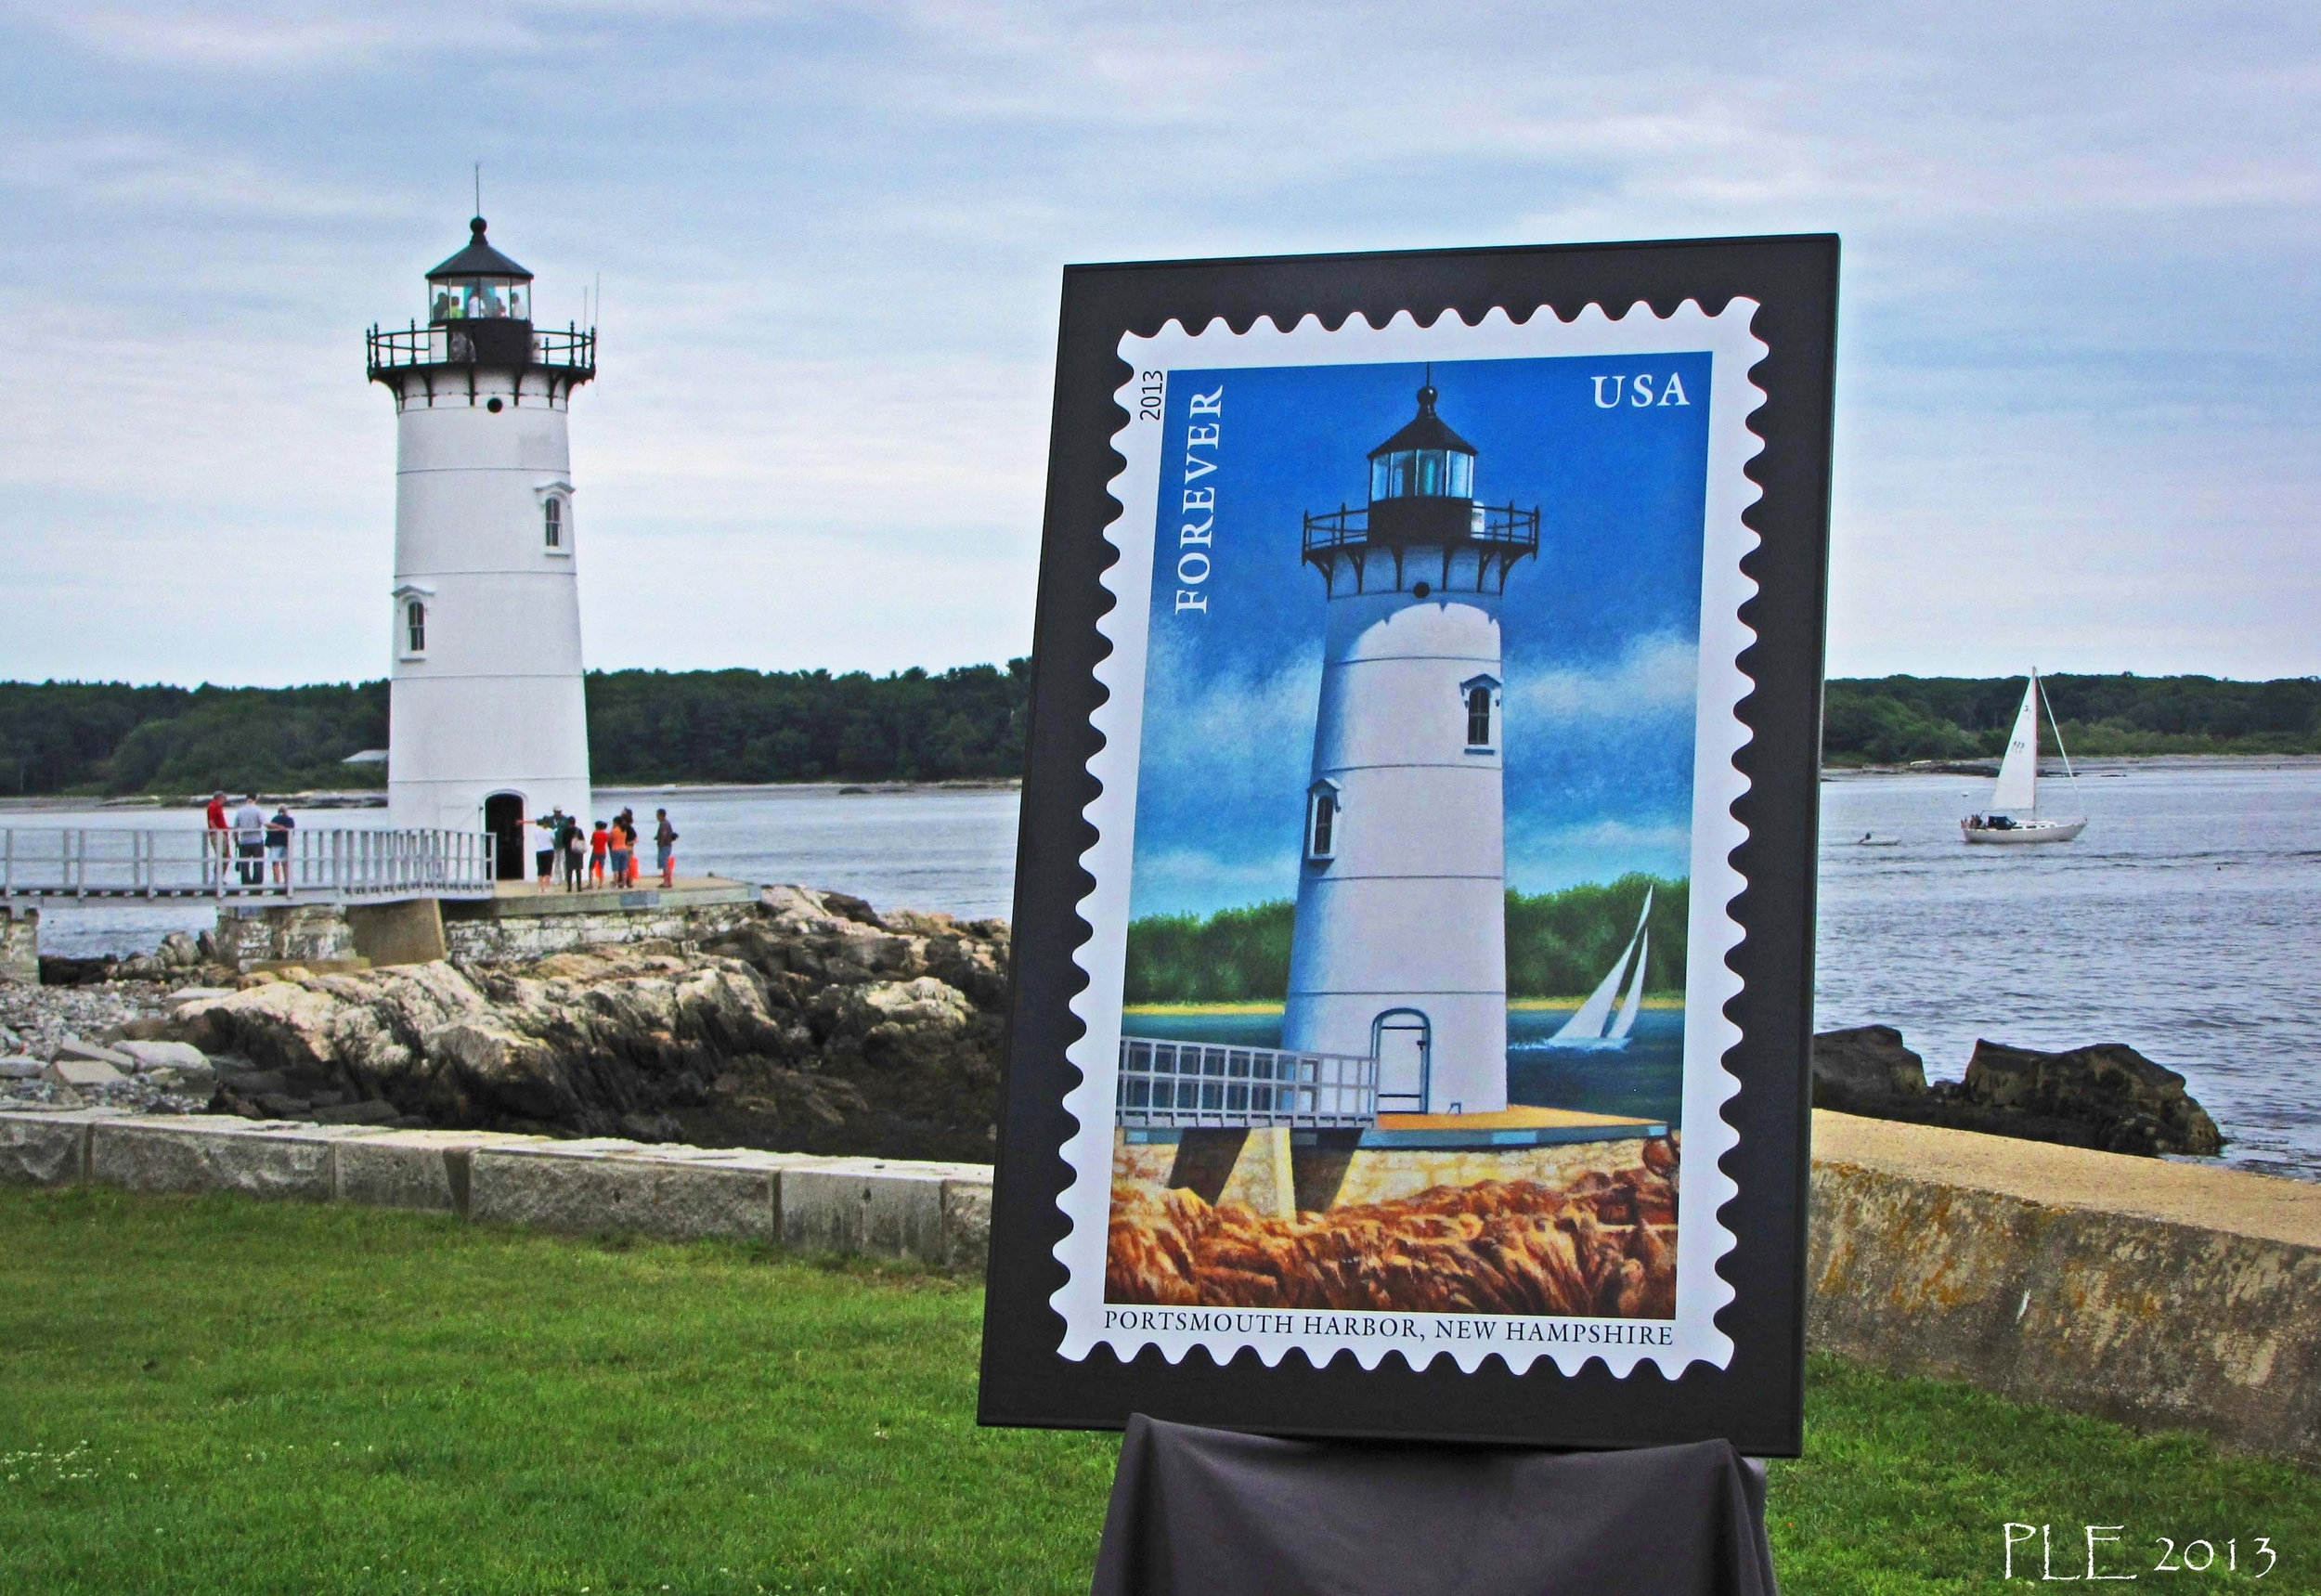 """NEW HAMPSHIRE    Portsmouth Harbor Lighthouse Stamp – First Day of Issue Ceremony New England Today - Yankee Magazine - April 28, 2014   I was quite excited to learn that Portsmouth Harbor Lighthouse has been chosen Editors' Choice for Best Lighthouse in the May/June issue of the Yankee Magazine Travel Guide to New England.  Portsmouth Harbor Lighthouse is a short drive up the coast from my house here in Southern New Hampshire. I have visited it on land often and have passed by it on the ferry when heading out to the Isles of Shoals many times. It is a well-known, and much loved icon on our NH coastline.  So, it was a proud day on Saturday, July 13, 2013, when the US Post Office commemorated a postage stamp with the image of the lighthouse as part of a 5-stamp series called """"The Lighthouses of New England."""" A formal ceremony was held under a tent, on the lawn in front of the lighthouse. A large poster of the painting of the lighthouse, that was used as the artwork for the postage stamp, was unveiled.  After the ceremony, I asked one of the organizers if he would be willing to move the poster of the stamp outside to the lawn, so I could photograph it with the real lighthouse in the background. Just as I was getting ready to take the photo, a sailboat passed by, making my image look even more like the stamp!  I am planning to enter this photo in the 2014 """"My New England"""" Photo Contest, but thought you might like to see it now, since the lighthouse will be featured in your May/June issue.   Photographer: Patricia Lane Evans   Location: Seabrook, New Hampshire   https://newengland.com/today/travel/new-hampshire/portsmouth-harbor-lighthouse-stamp-first-day-of-issue-ceremony/"""